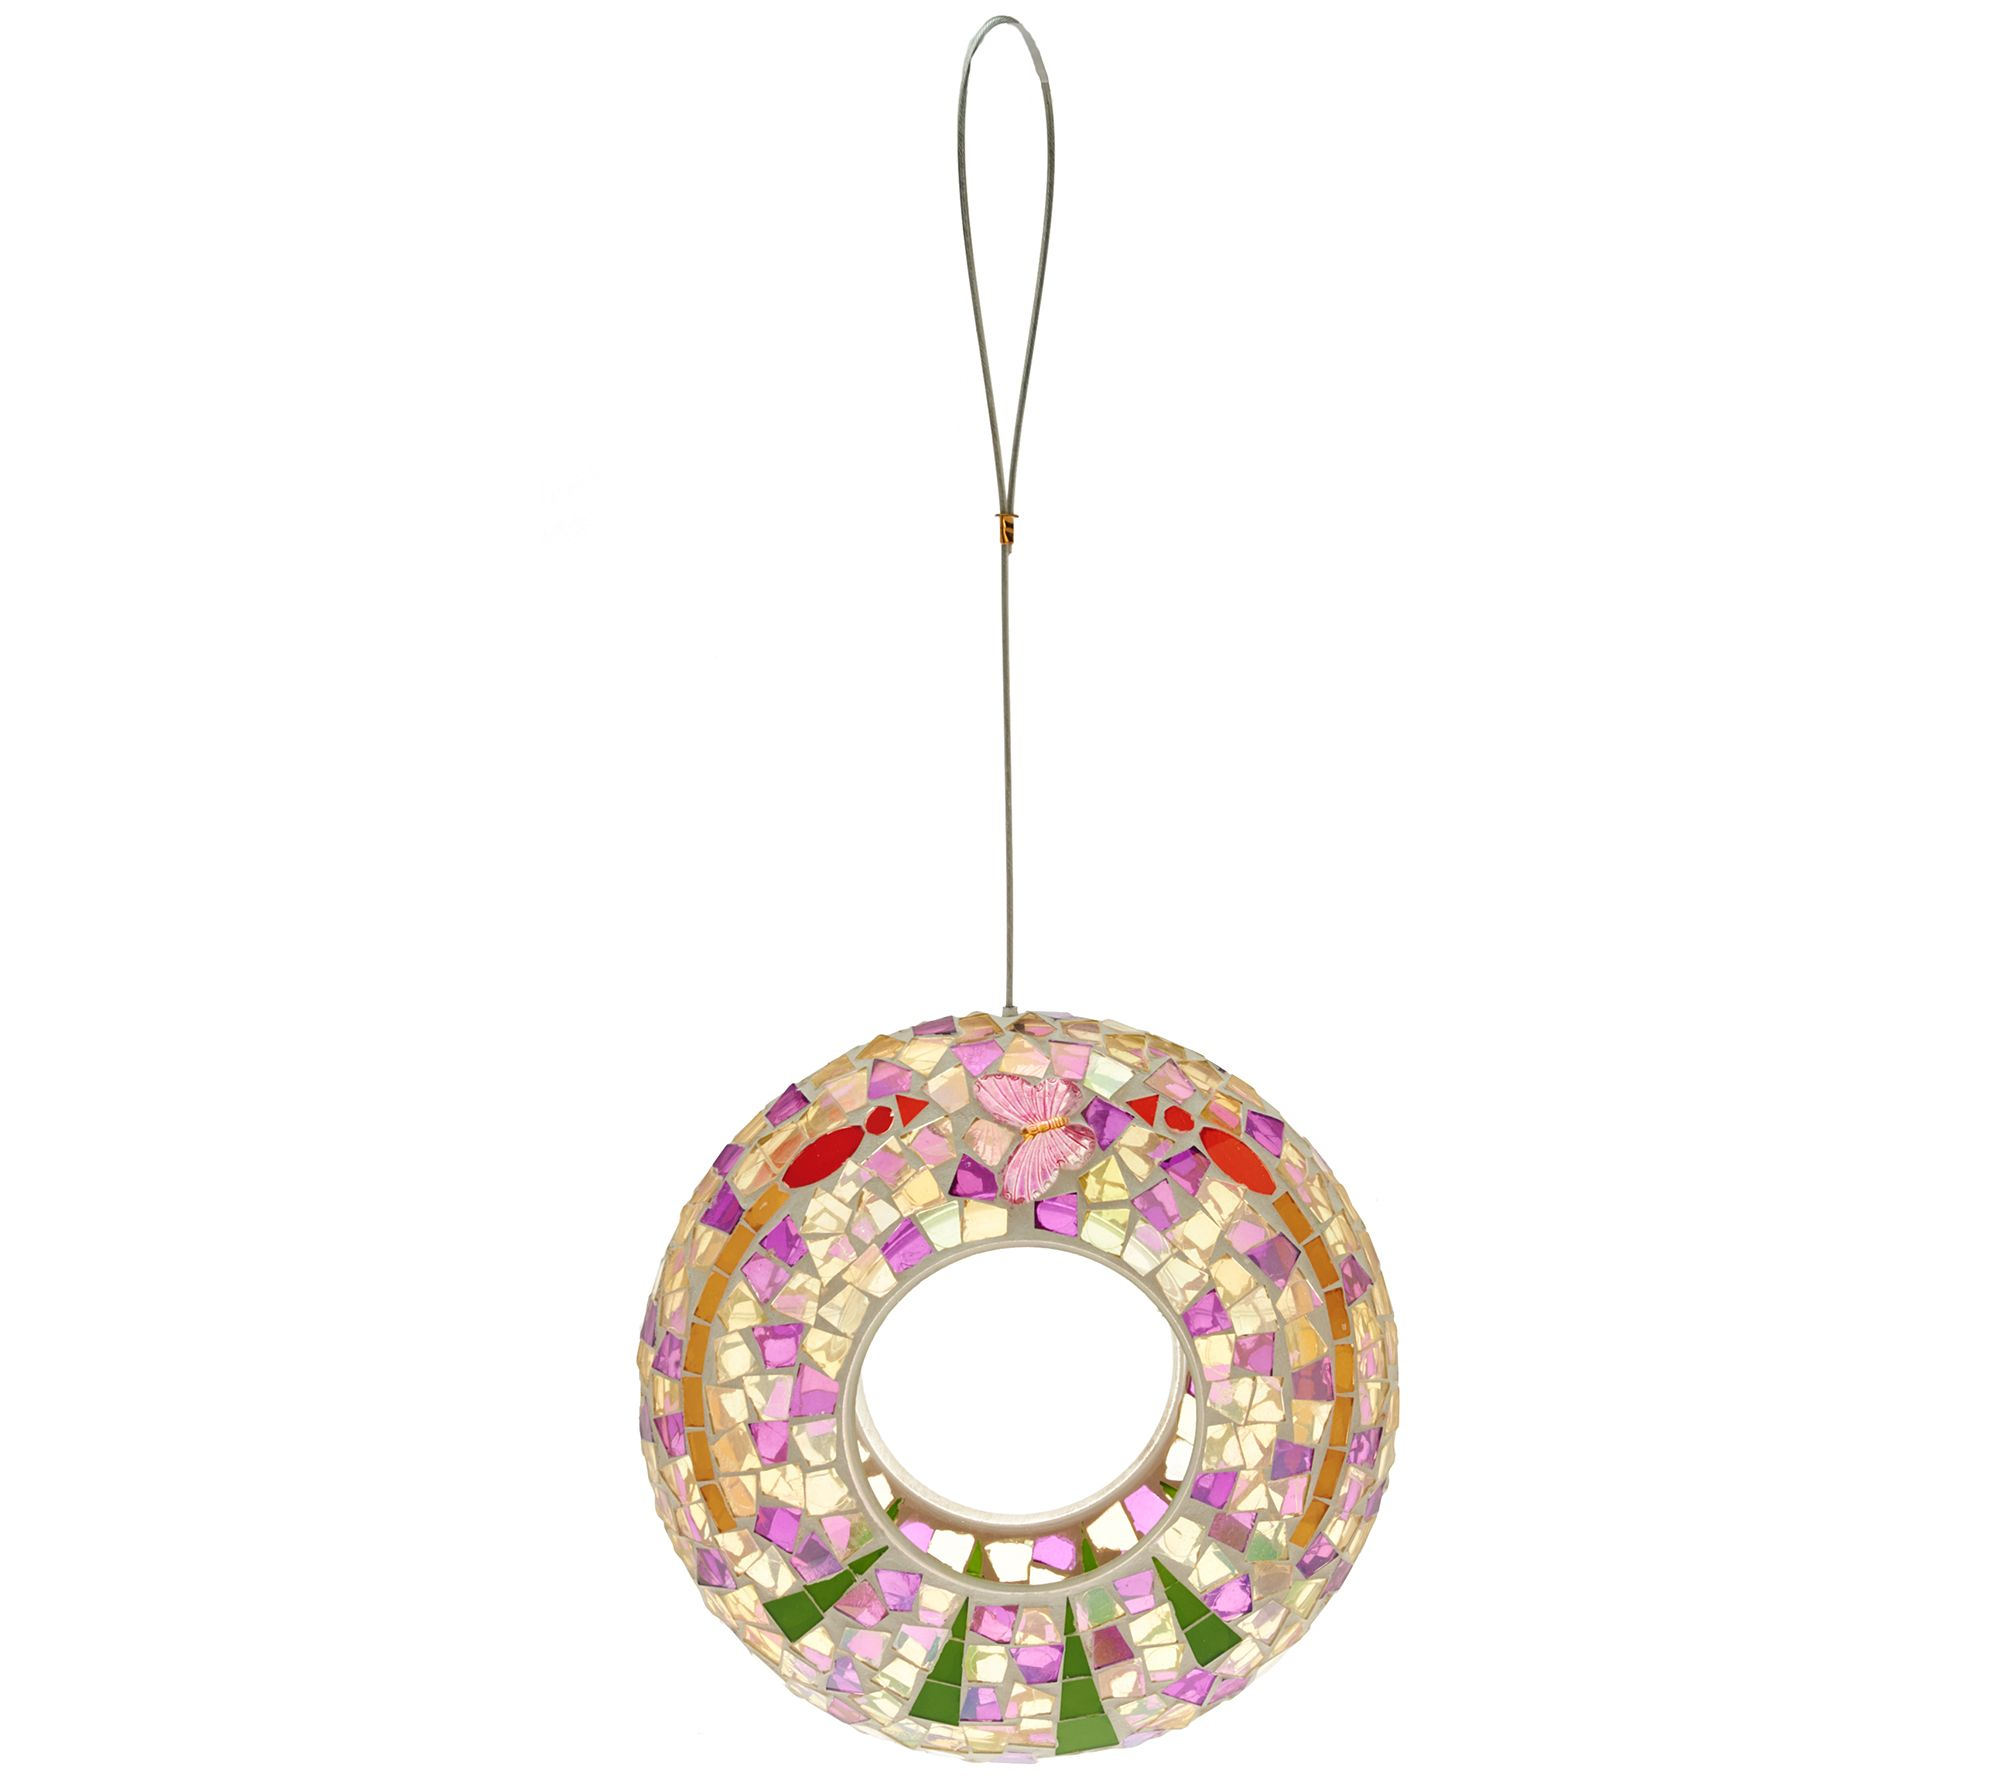 Mosiac Round Birdfeeder by Evergreen